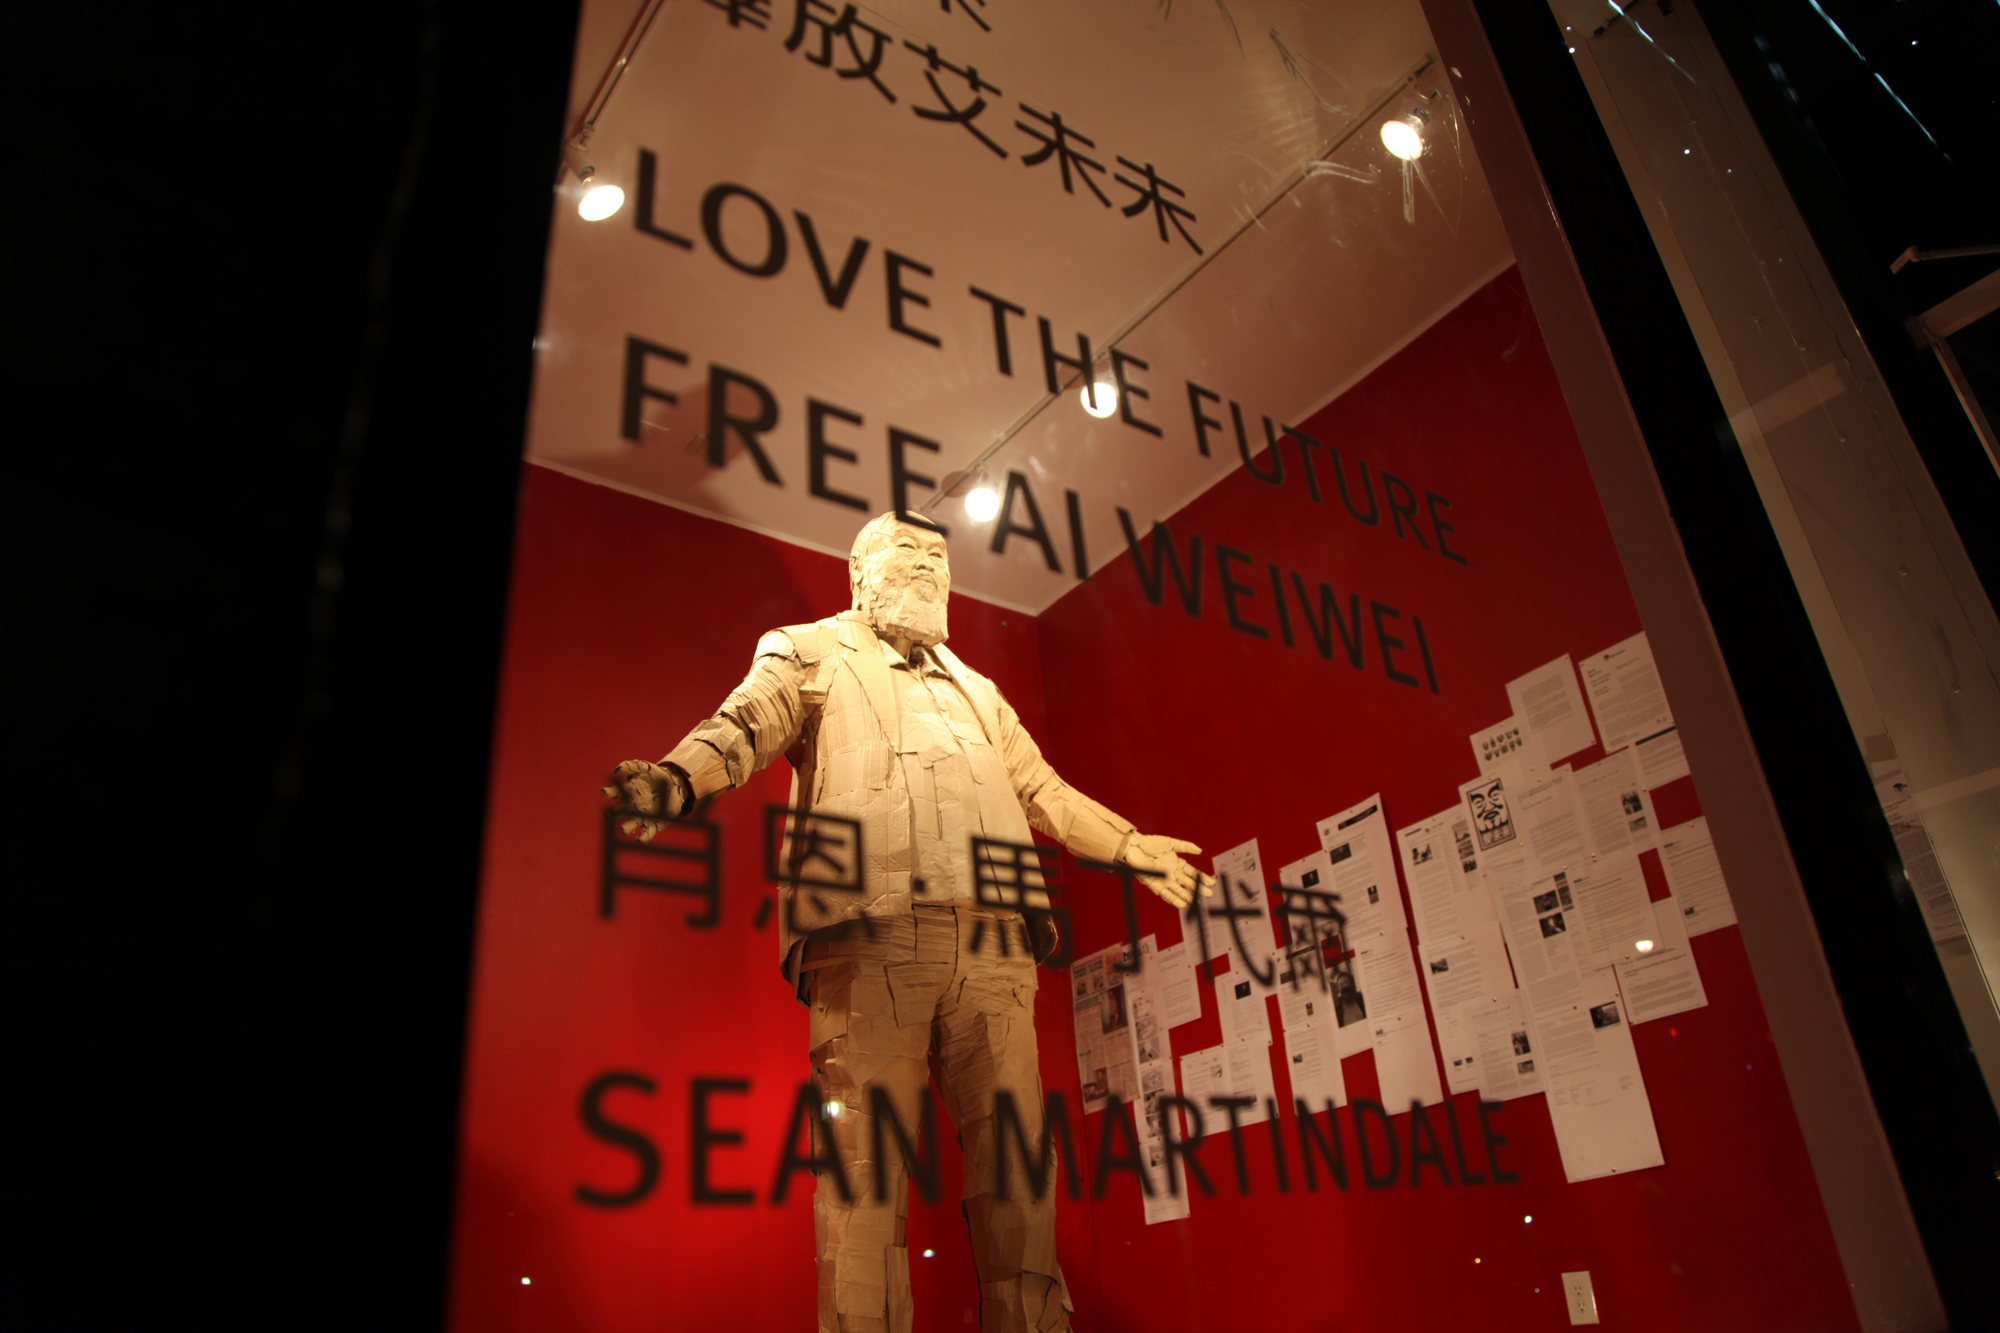 Love the Future / Free Ai Weiwei , 2011. Sean Martindale artist. Photo by Sean Martindale.